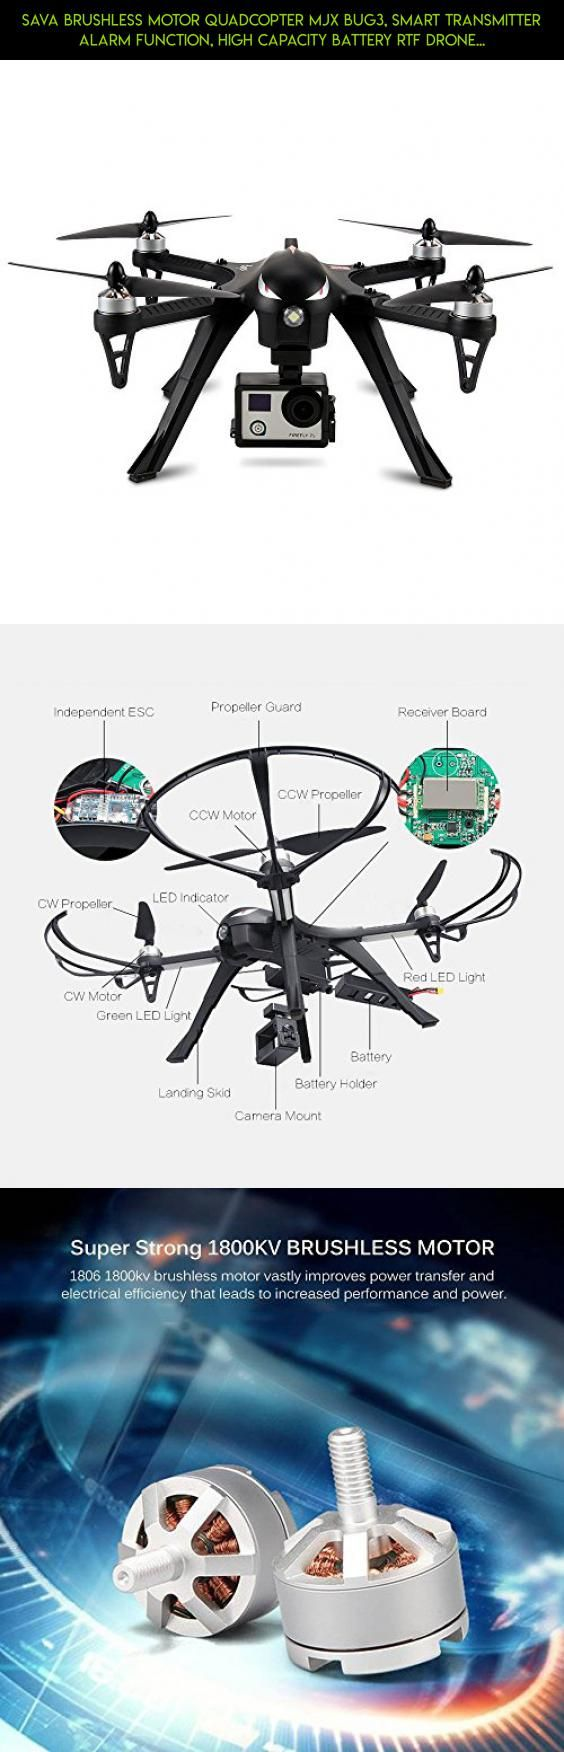 SAVA Brushless Motor Quadcopter MJX BUG3, Smart Transmitter Alarm Function, High Capacity Battery RTF Drone without Camera-Support GoPro HERO Cameras and Sports Cameras #racing #shopping #fpv #plans #bugs #products #parts #mjx #drone #technology #3 #tech #kit #camera #drone #gadgets